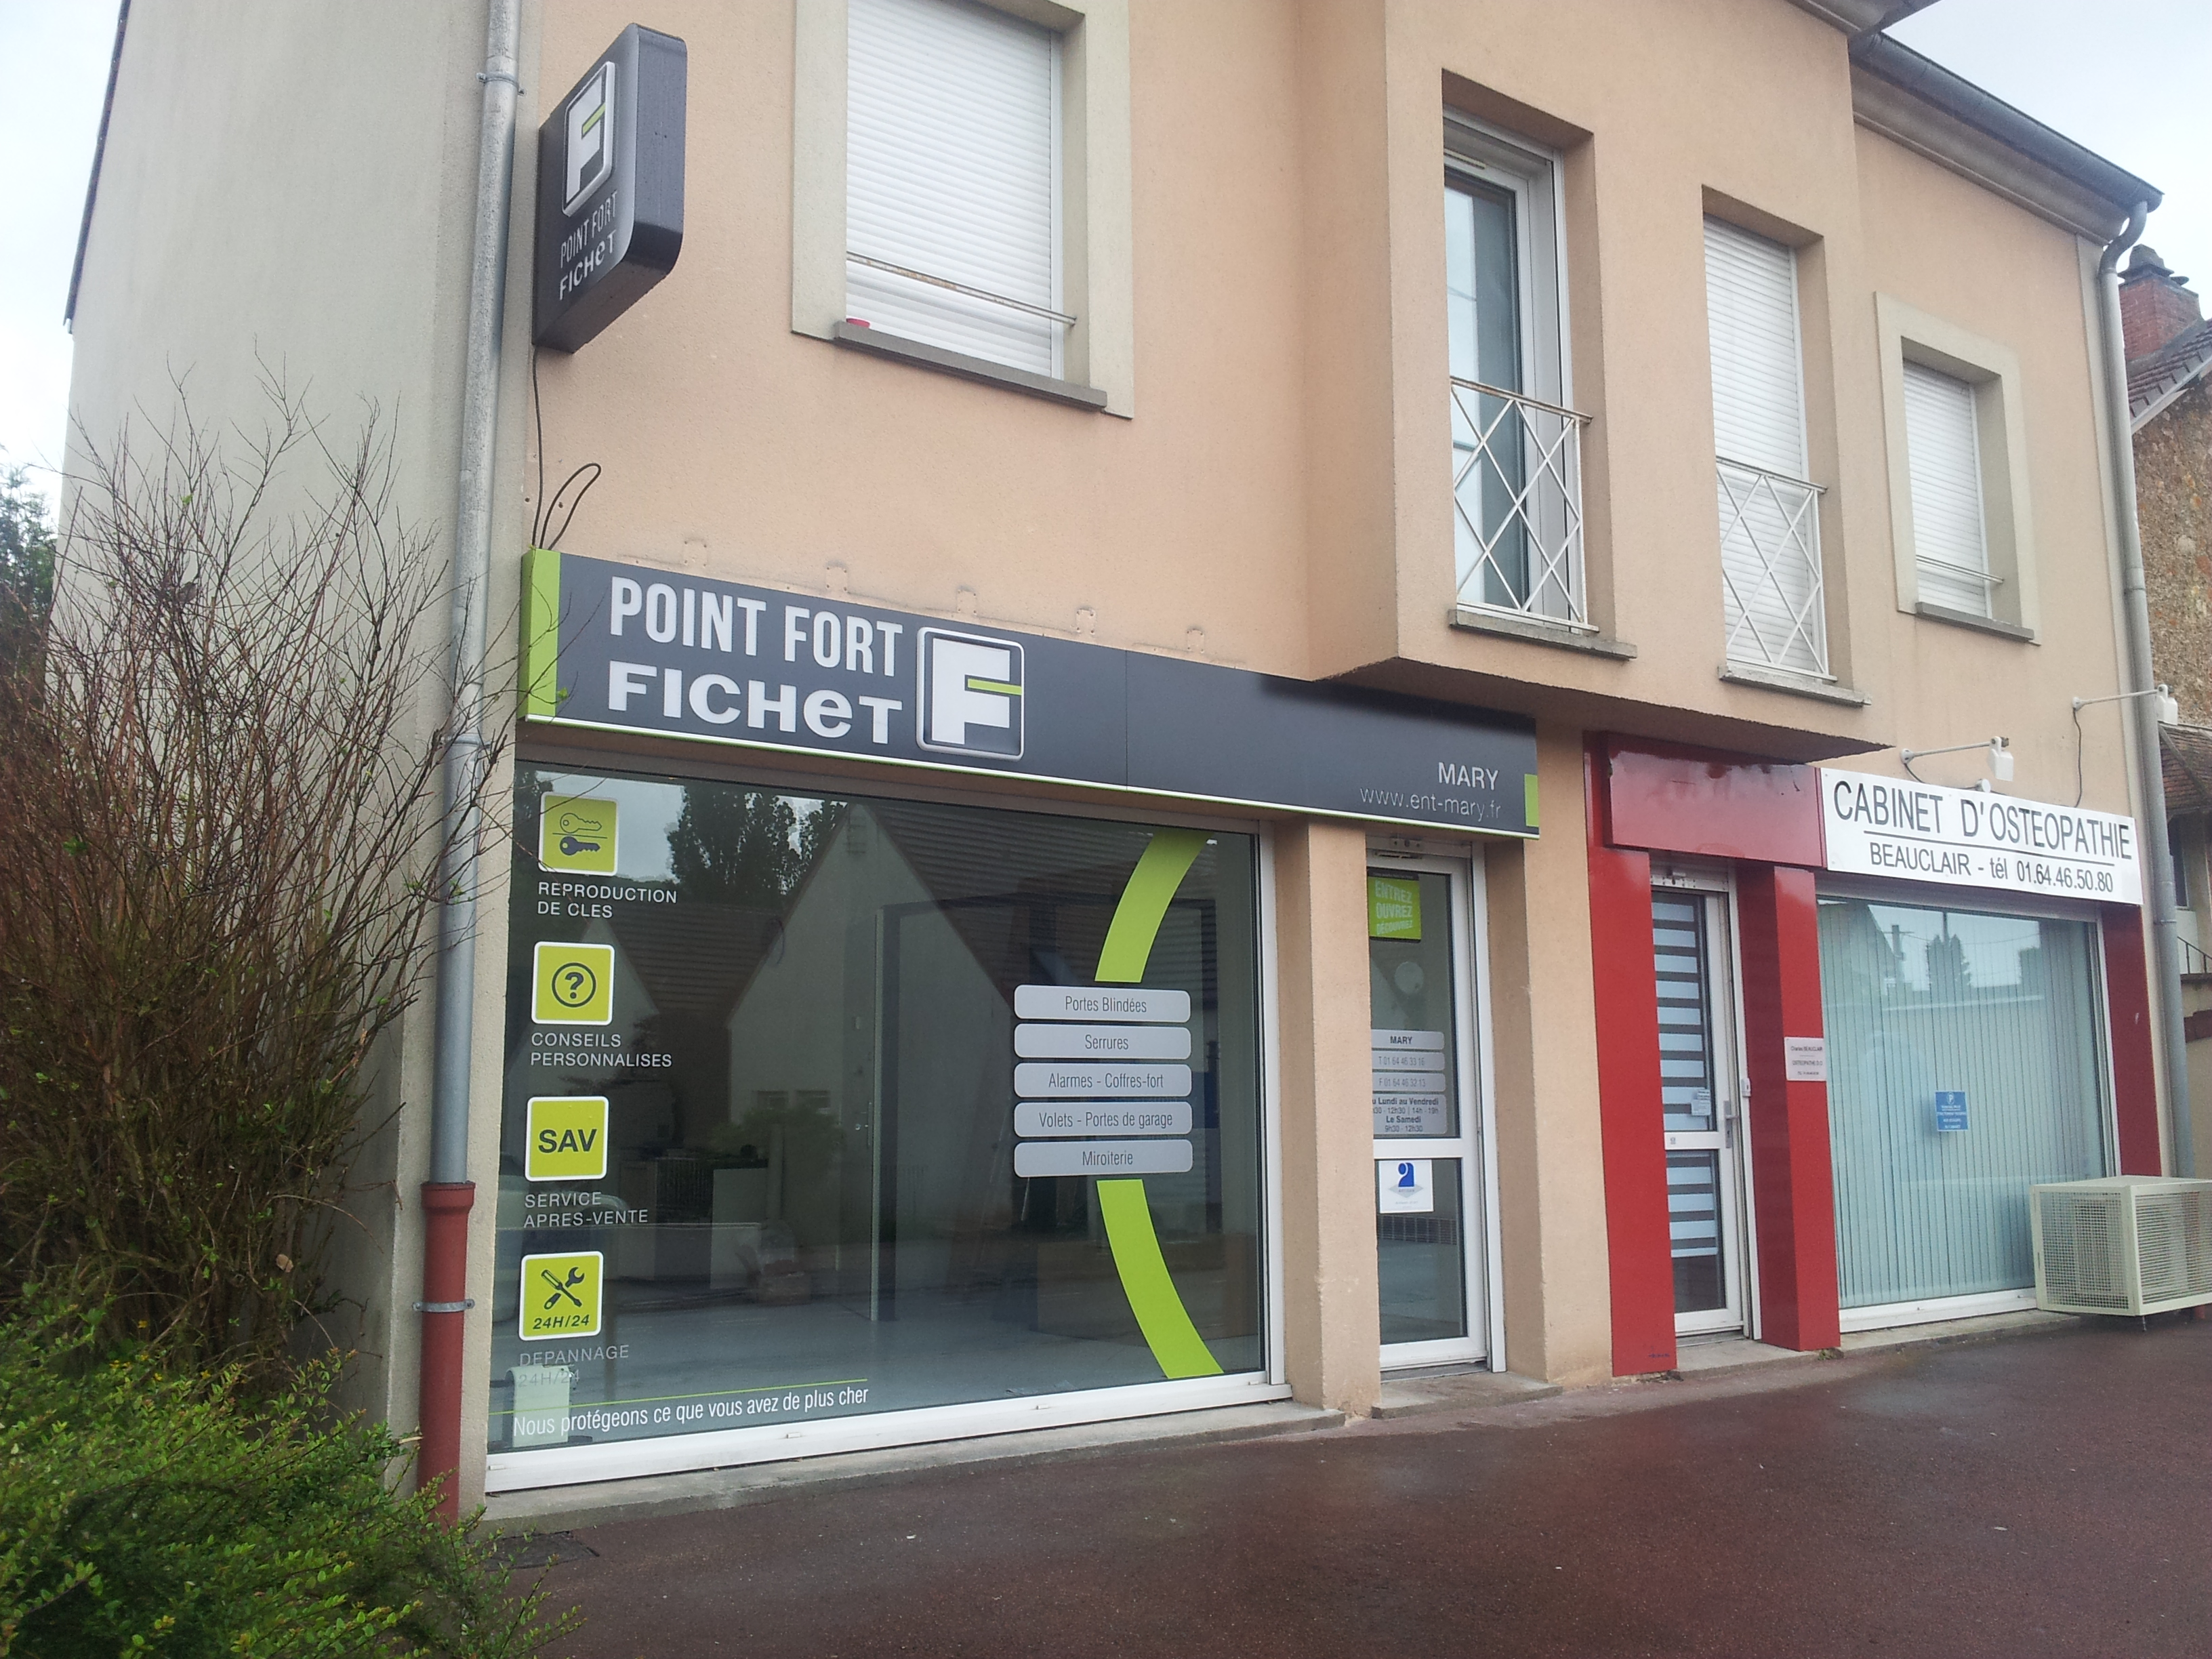 Entreprise mary point fort fichet 91 contact for Point fort fichet